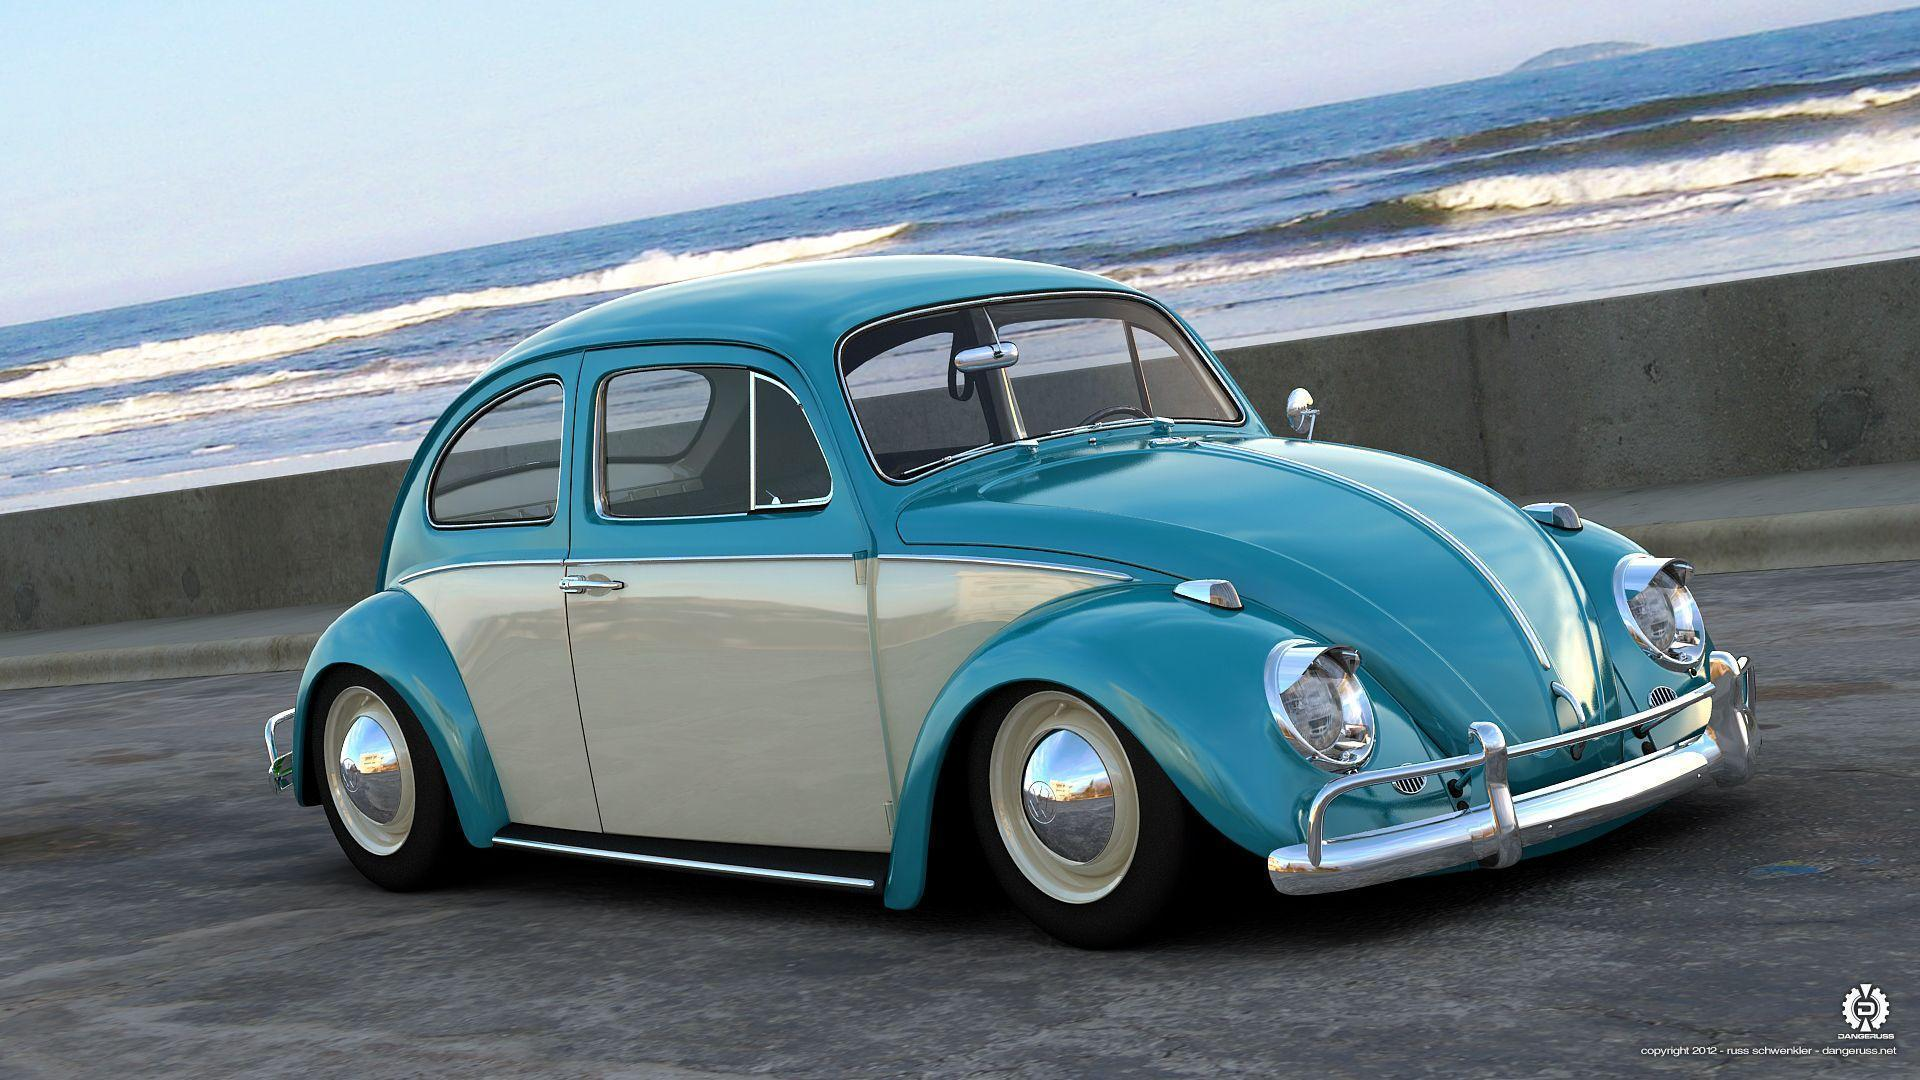 Volkswagen Beetle Computer Wallpapers, Desktop Backgrounds